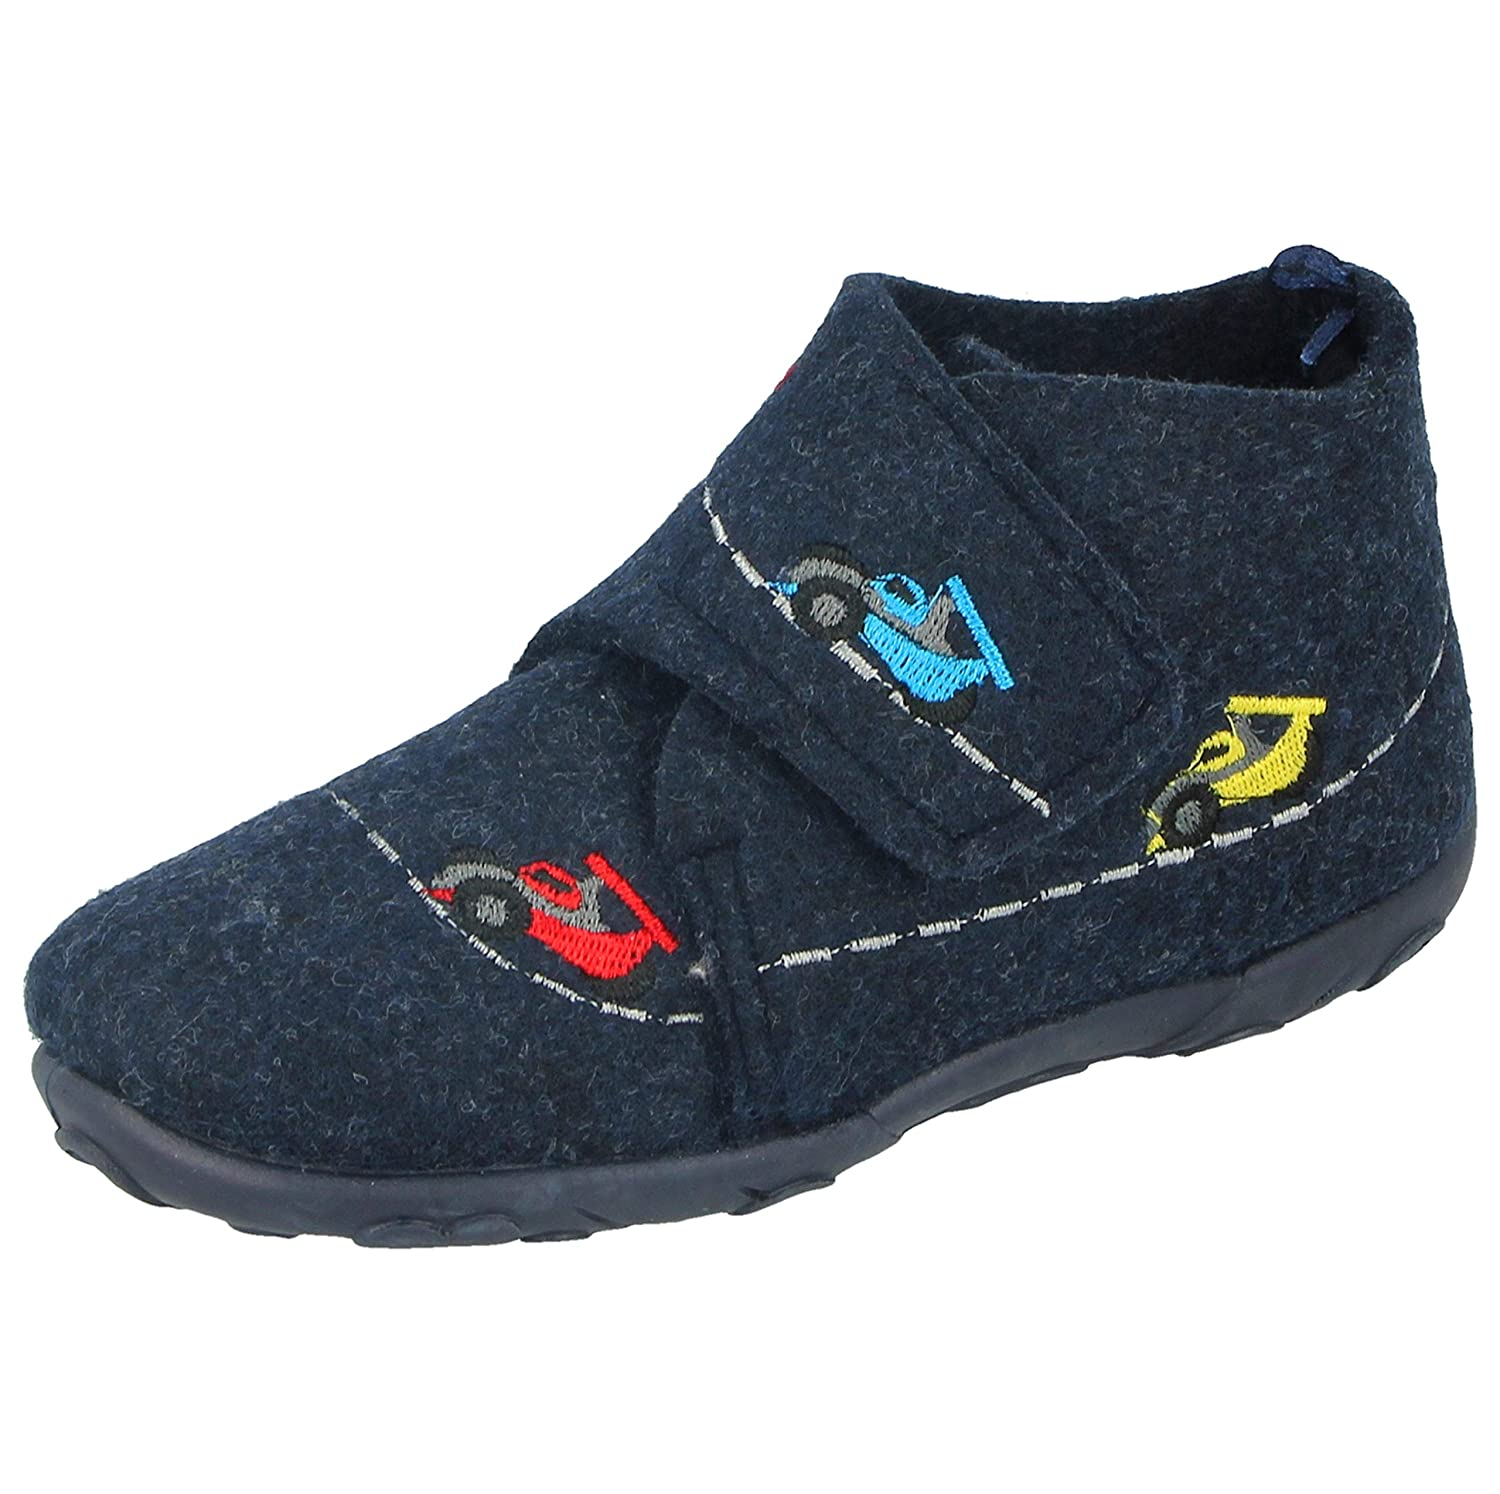 Boys Baby Infant Fire Engine Police Cars Slip On Warm Fleece Lined Hard Sole Slippers Size 4-13